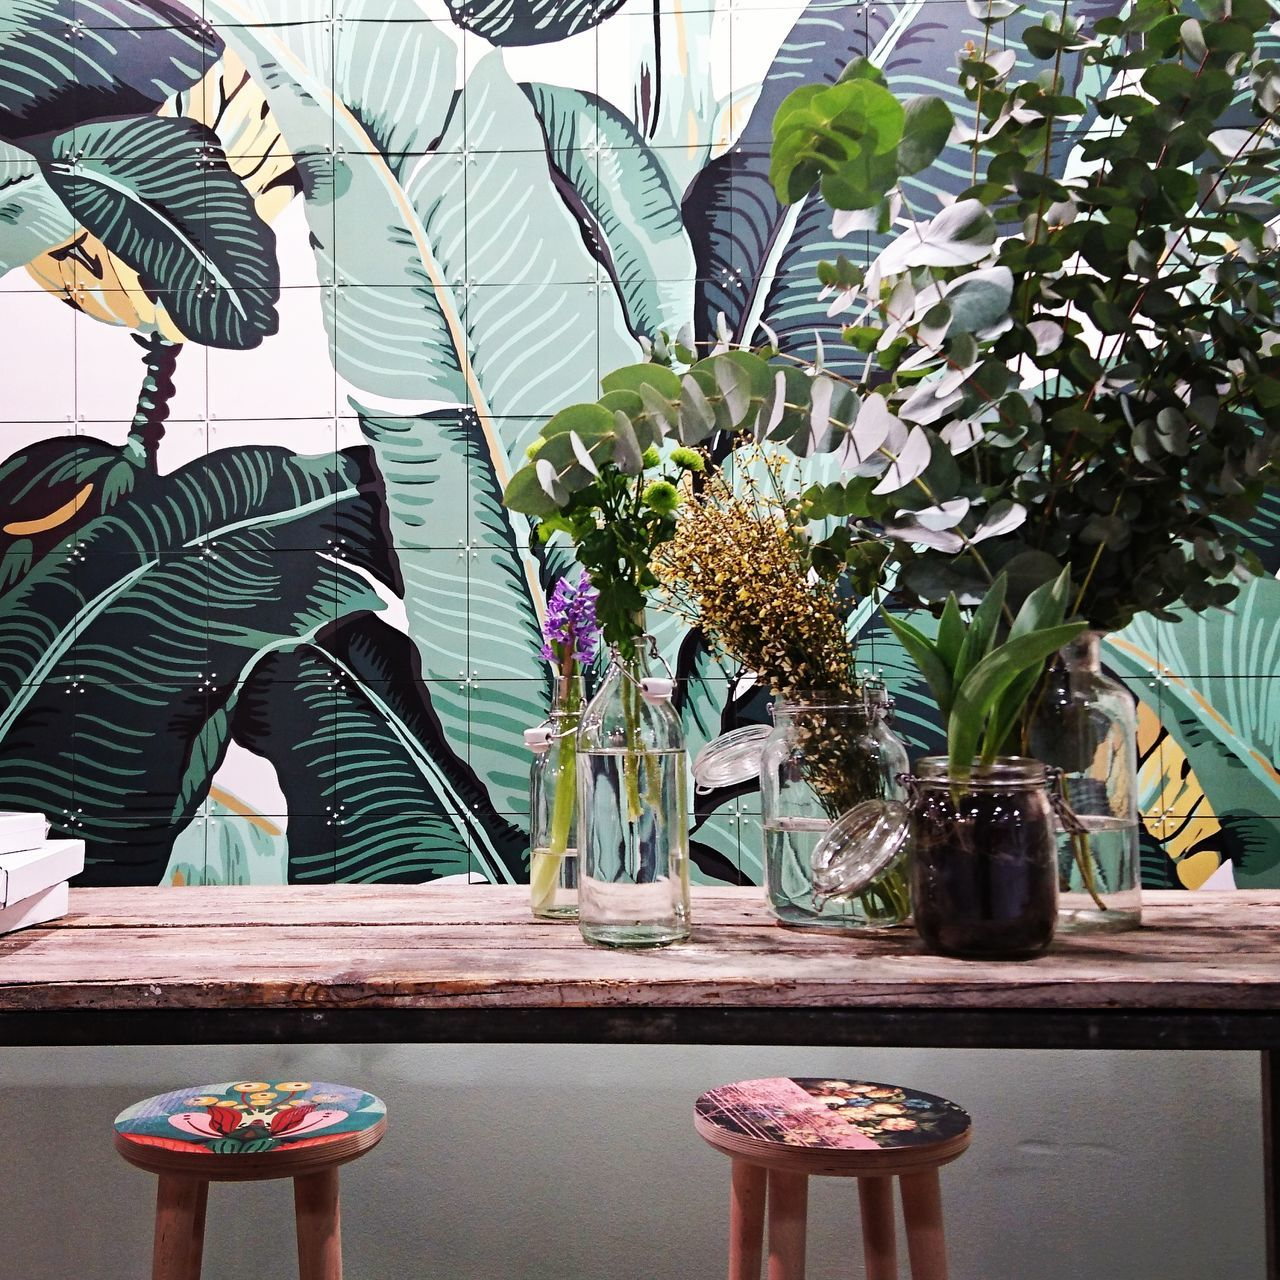 Flower Plant Table Nature Leaf Indoors  Beauty In Nature Green Green Green!  Jungalow Style Jungle At Home Green Color Plant Home Decore Home Design Interior Design Design